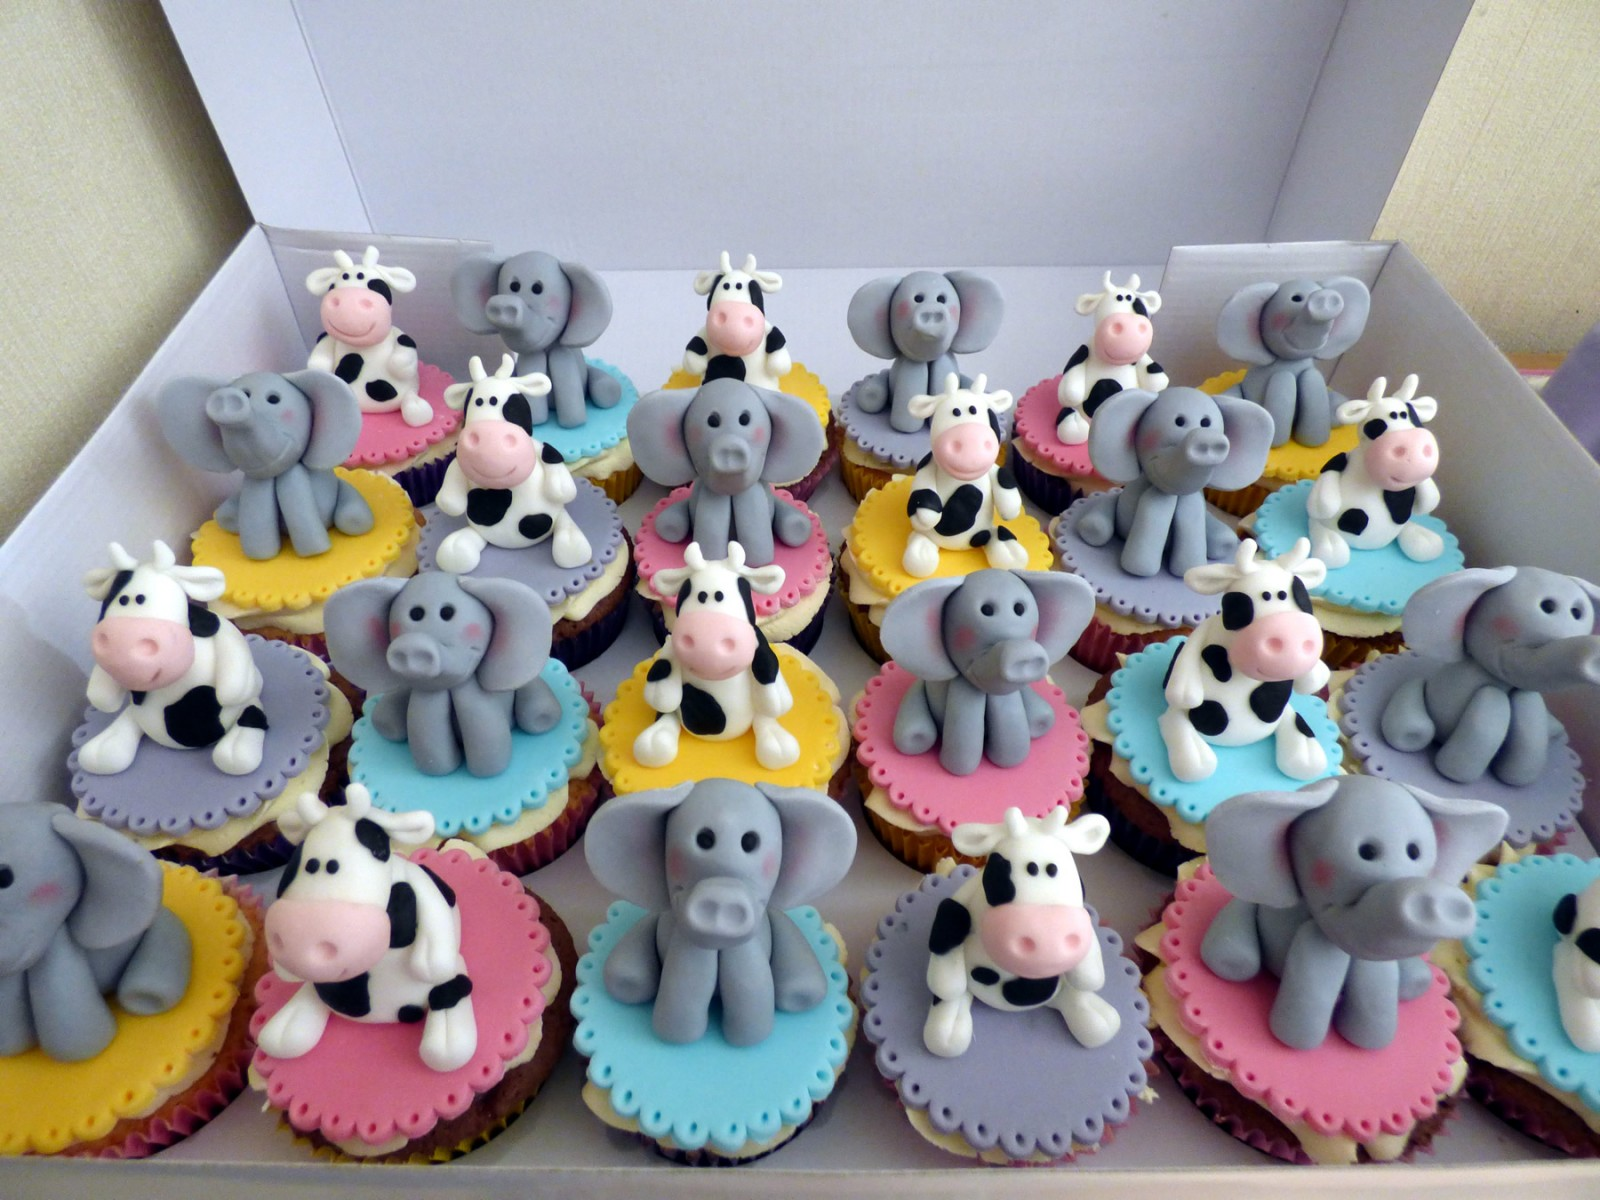 Twins 11th Birthday Cake Cow And Elephant Themed With Cupcakes